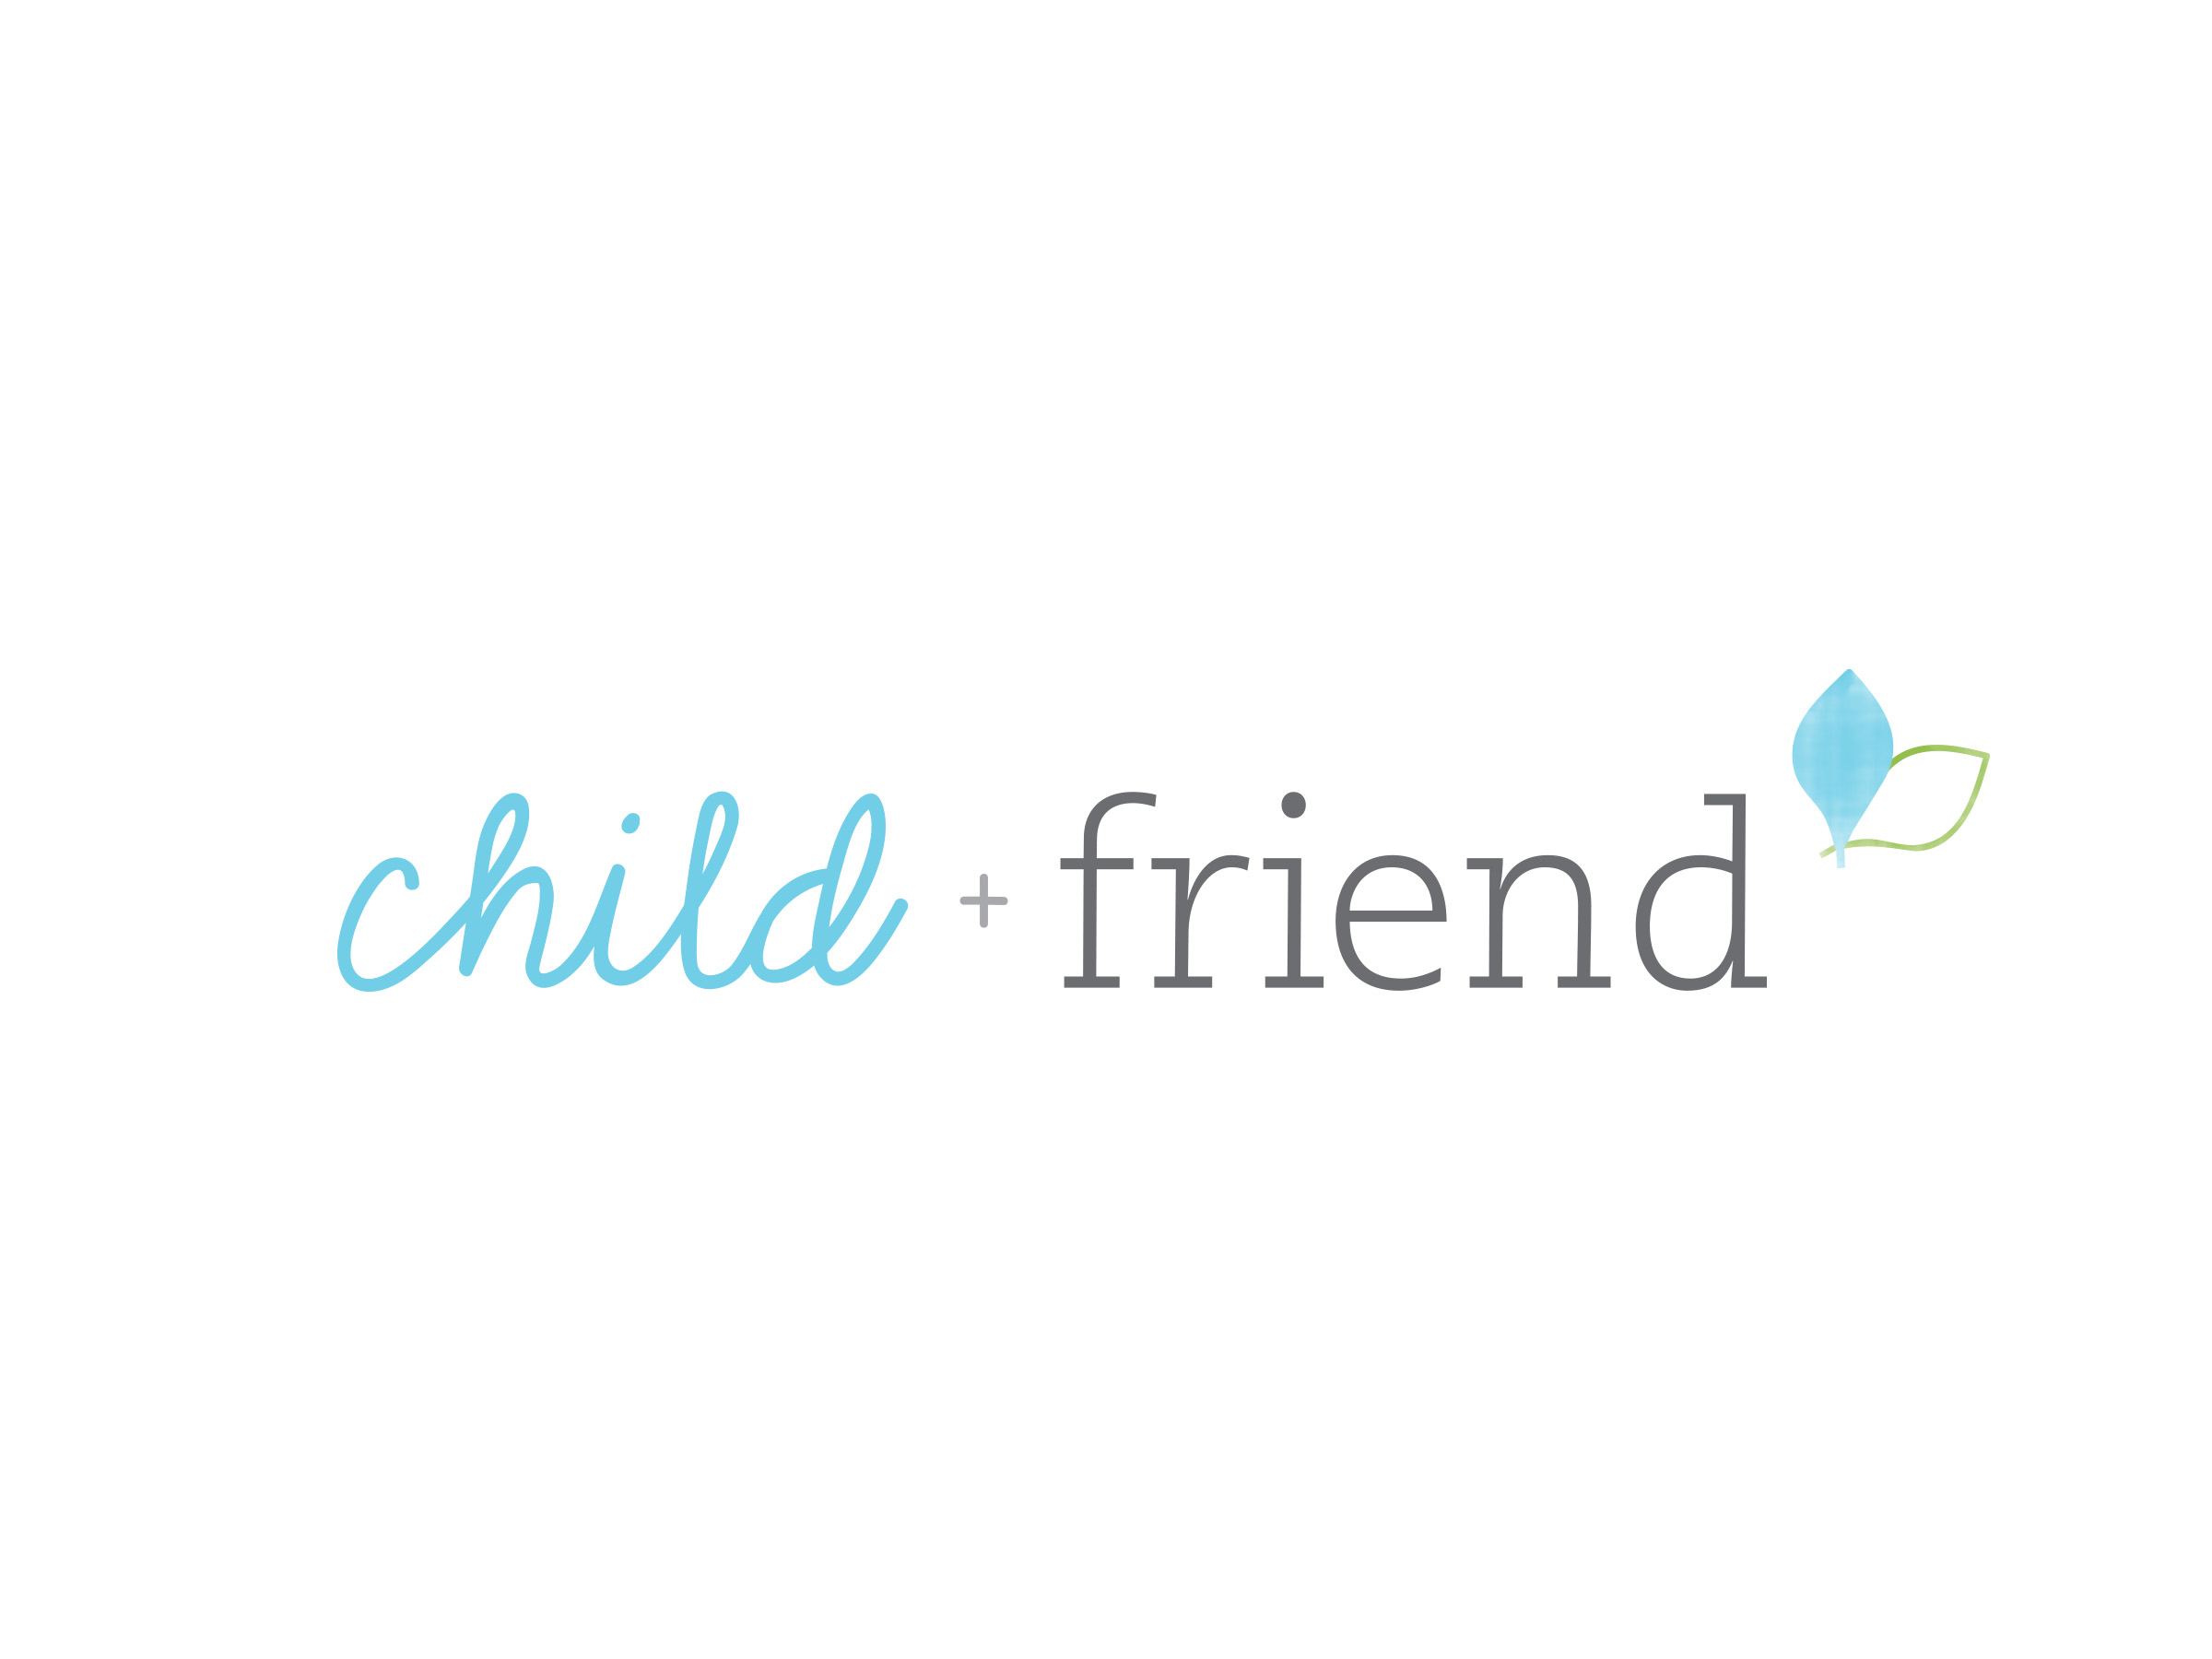 childandfriend.com    branding, website